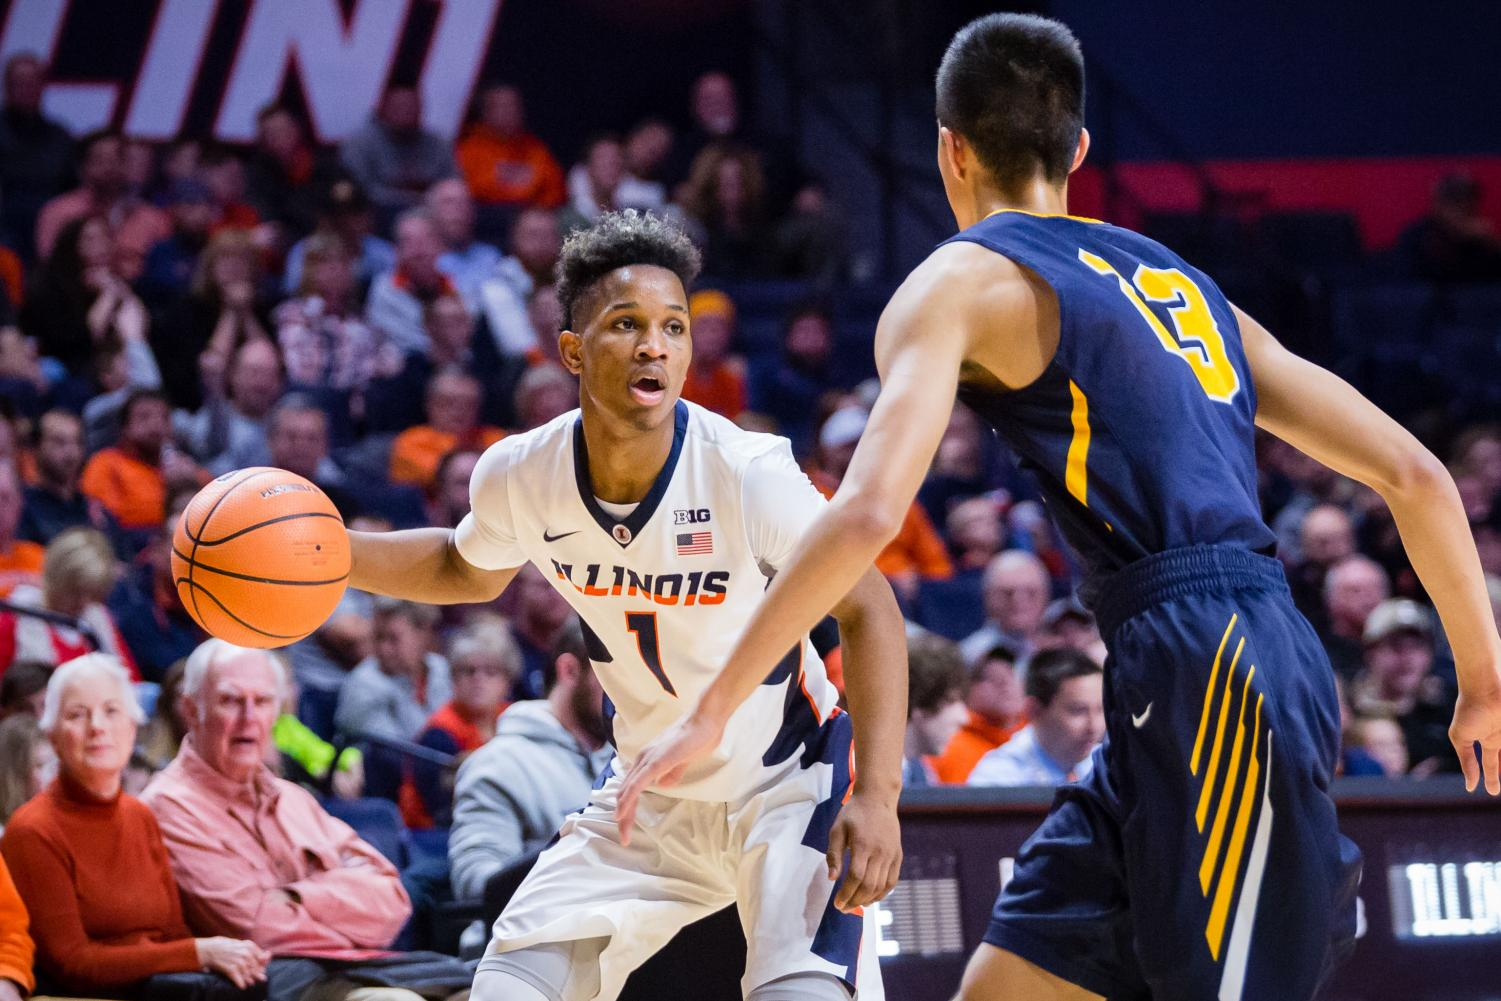 Illinois guard Trent Frazier looks for an open man during the game against Augustana on Nov. 22. The team under Brad Underwood hasn't performed quite as was anticipated.